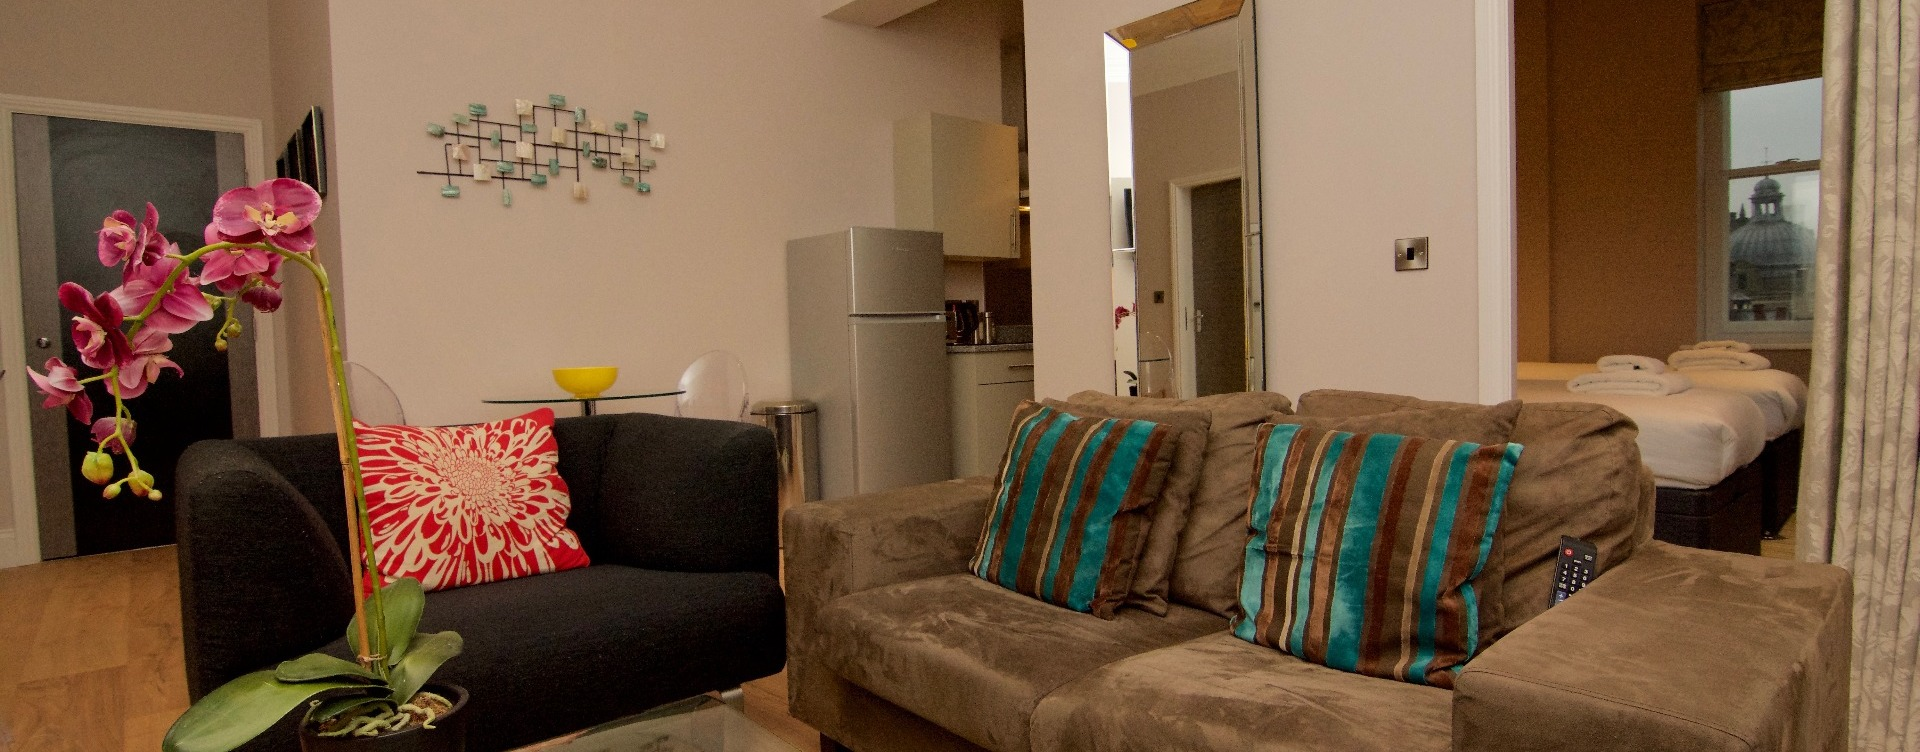 serviced apartments in Harrogate on business